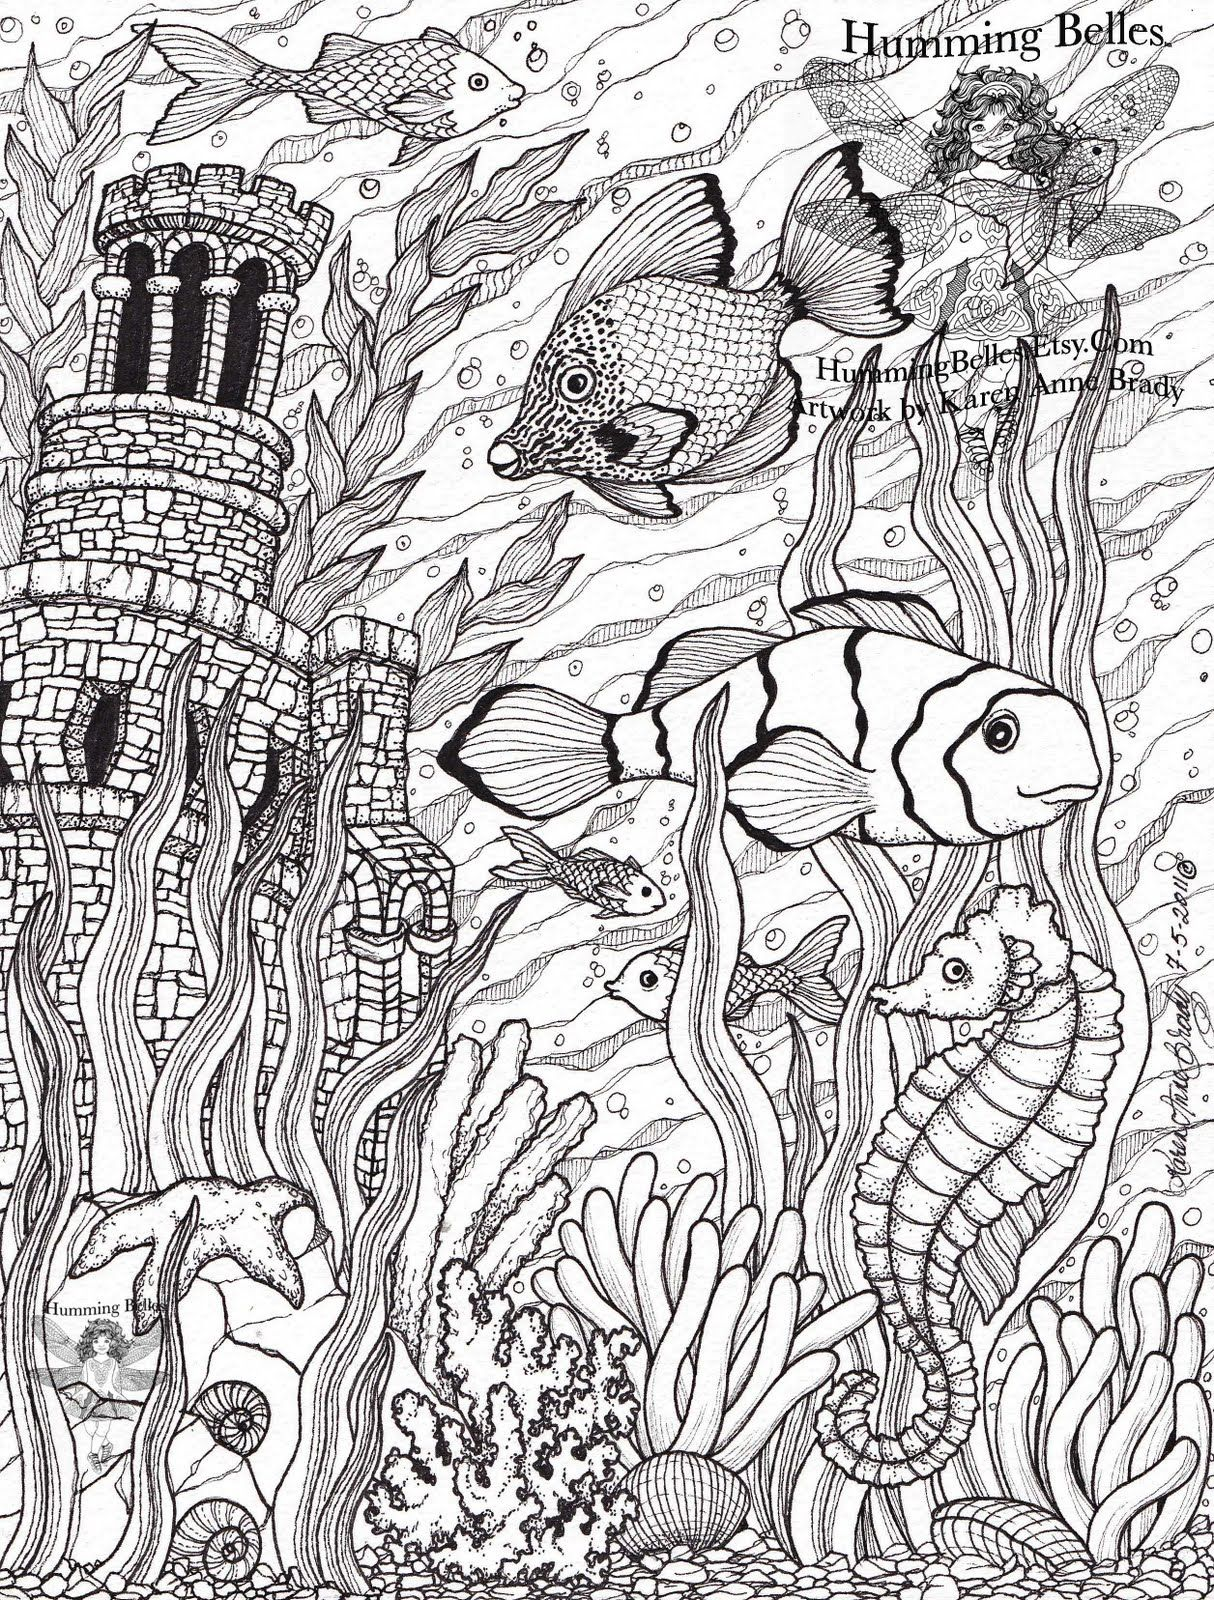 Intricate Coloring Pages for Adults | ... Humming Belles"|1214|1600|?|False|9282a83a7042af96ff19794fdebea7ab|False|UNLIKELY|0.3015592694282532